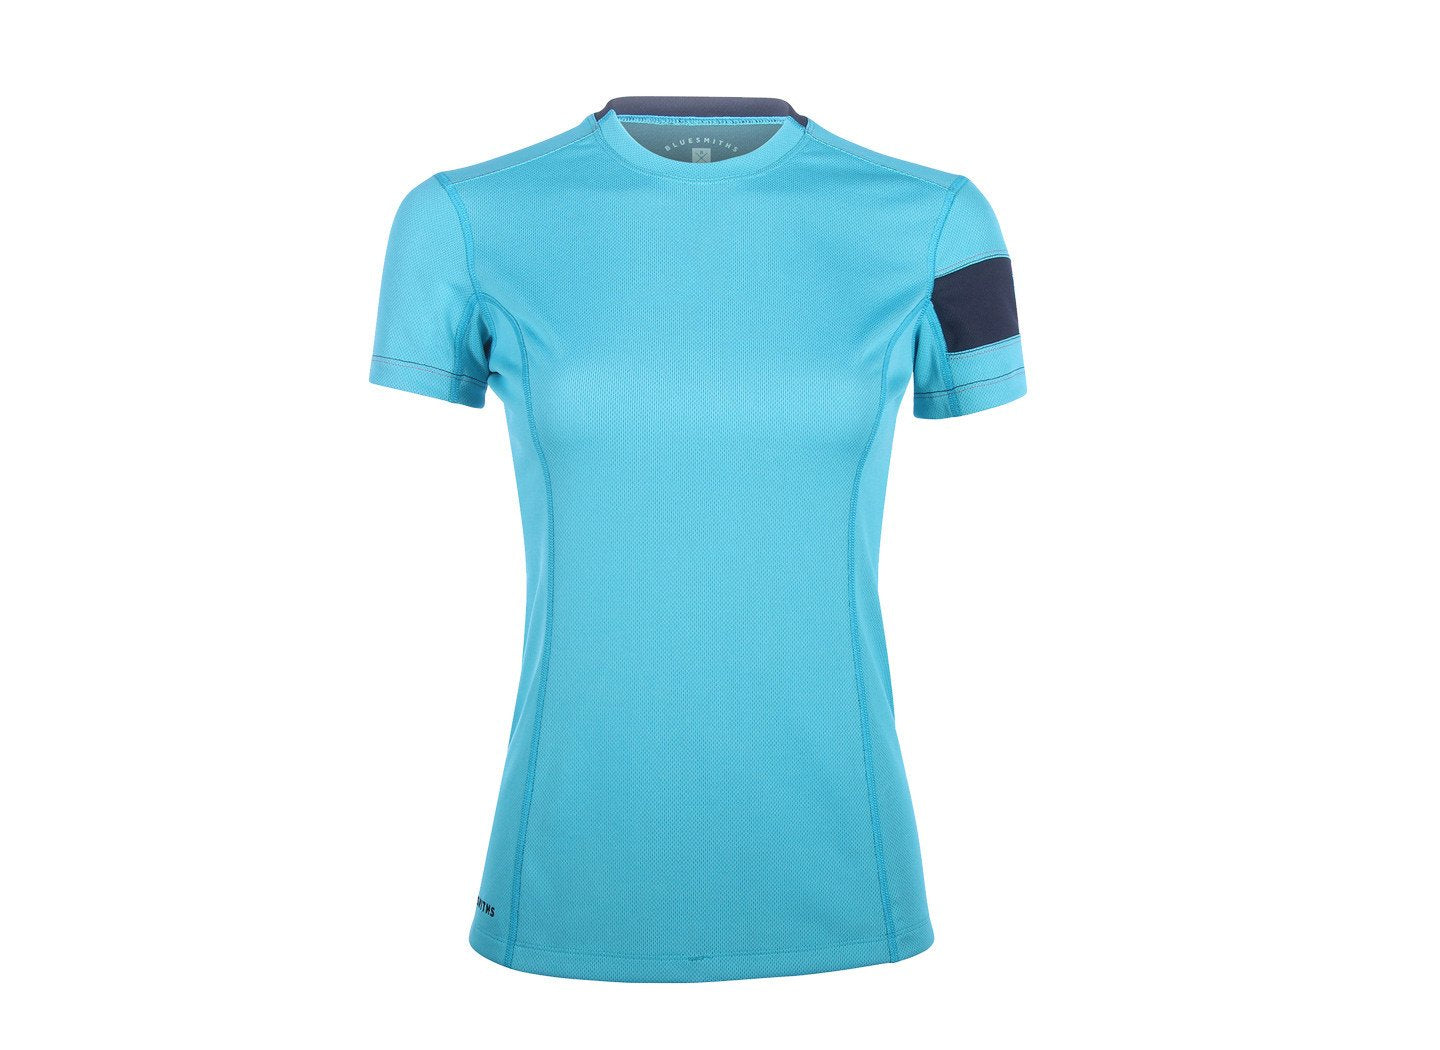 Blue Atoll - The Lane Hydrophobic Shirt  for Women by Bluesmiths 1